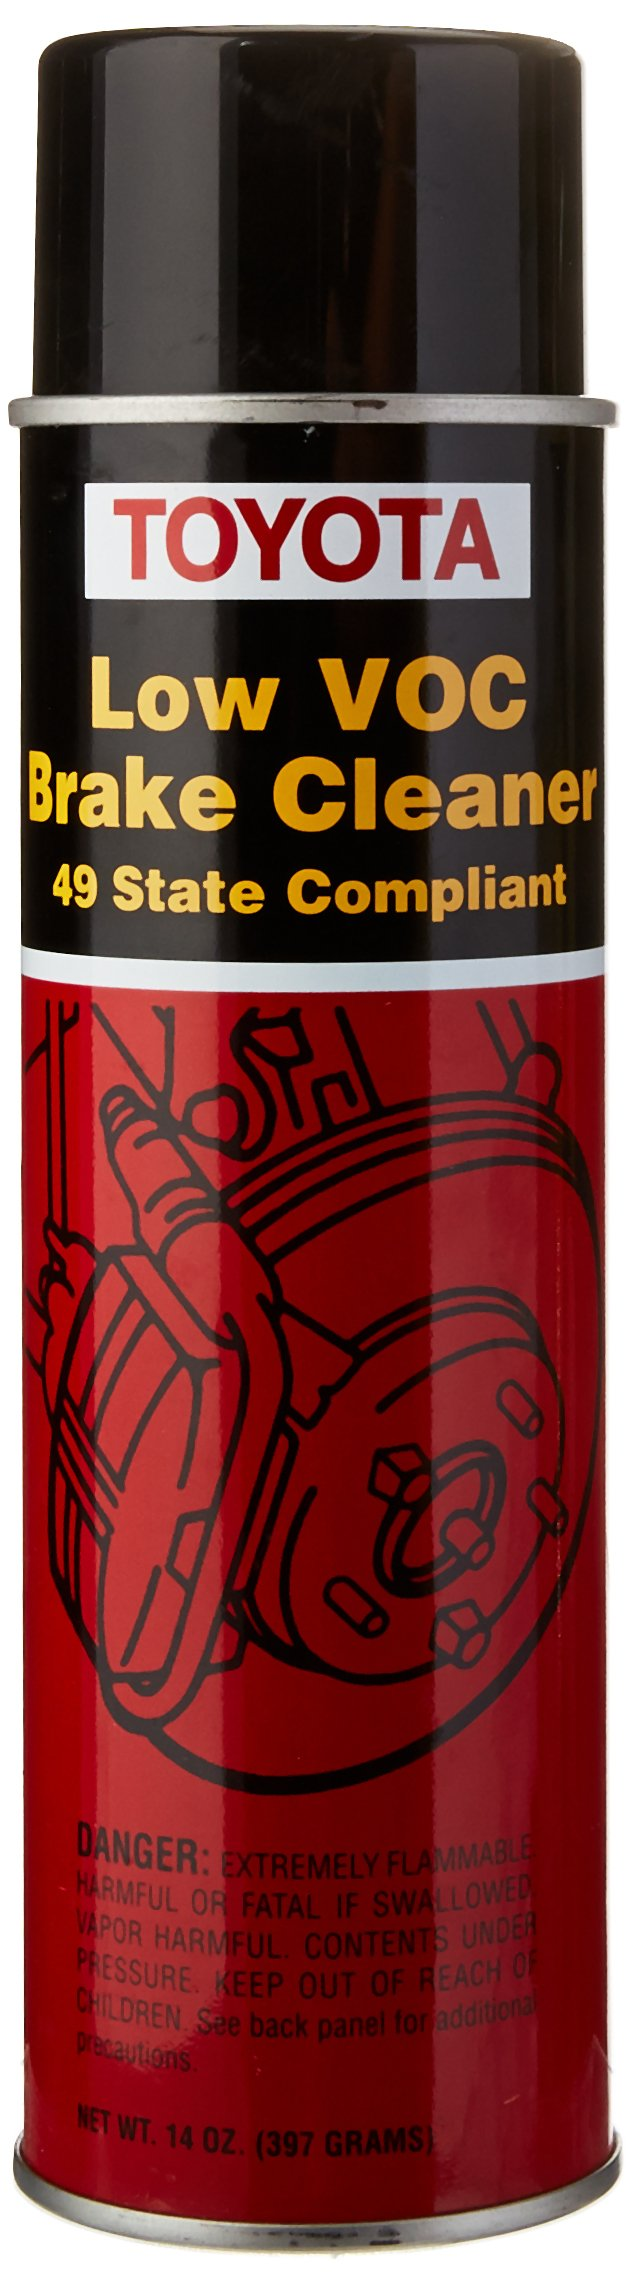 Toyota Genuine Fluid 00289-2BC00-CA Non-Chlorinated Low VOC Brake Cleaner - 14 oz. Can